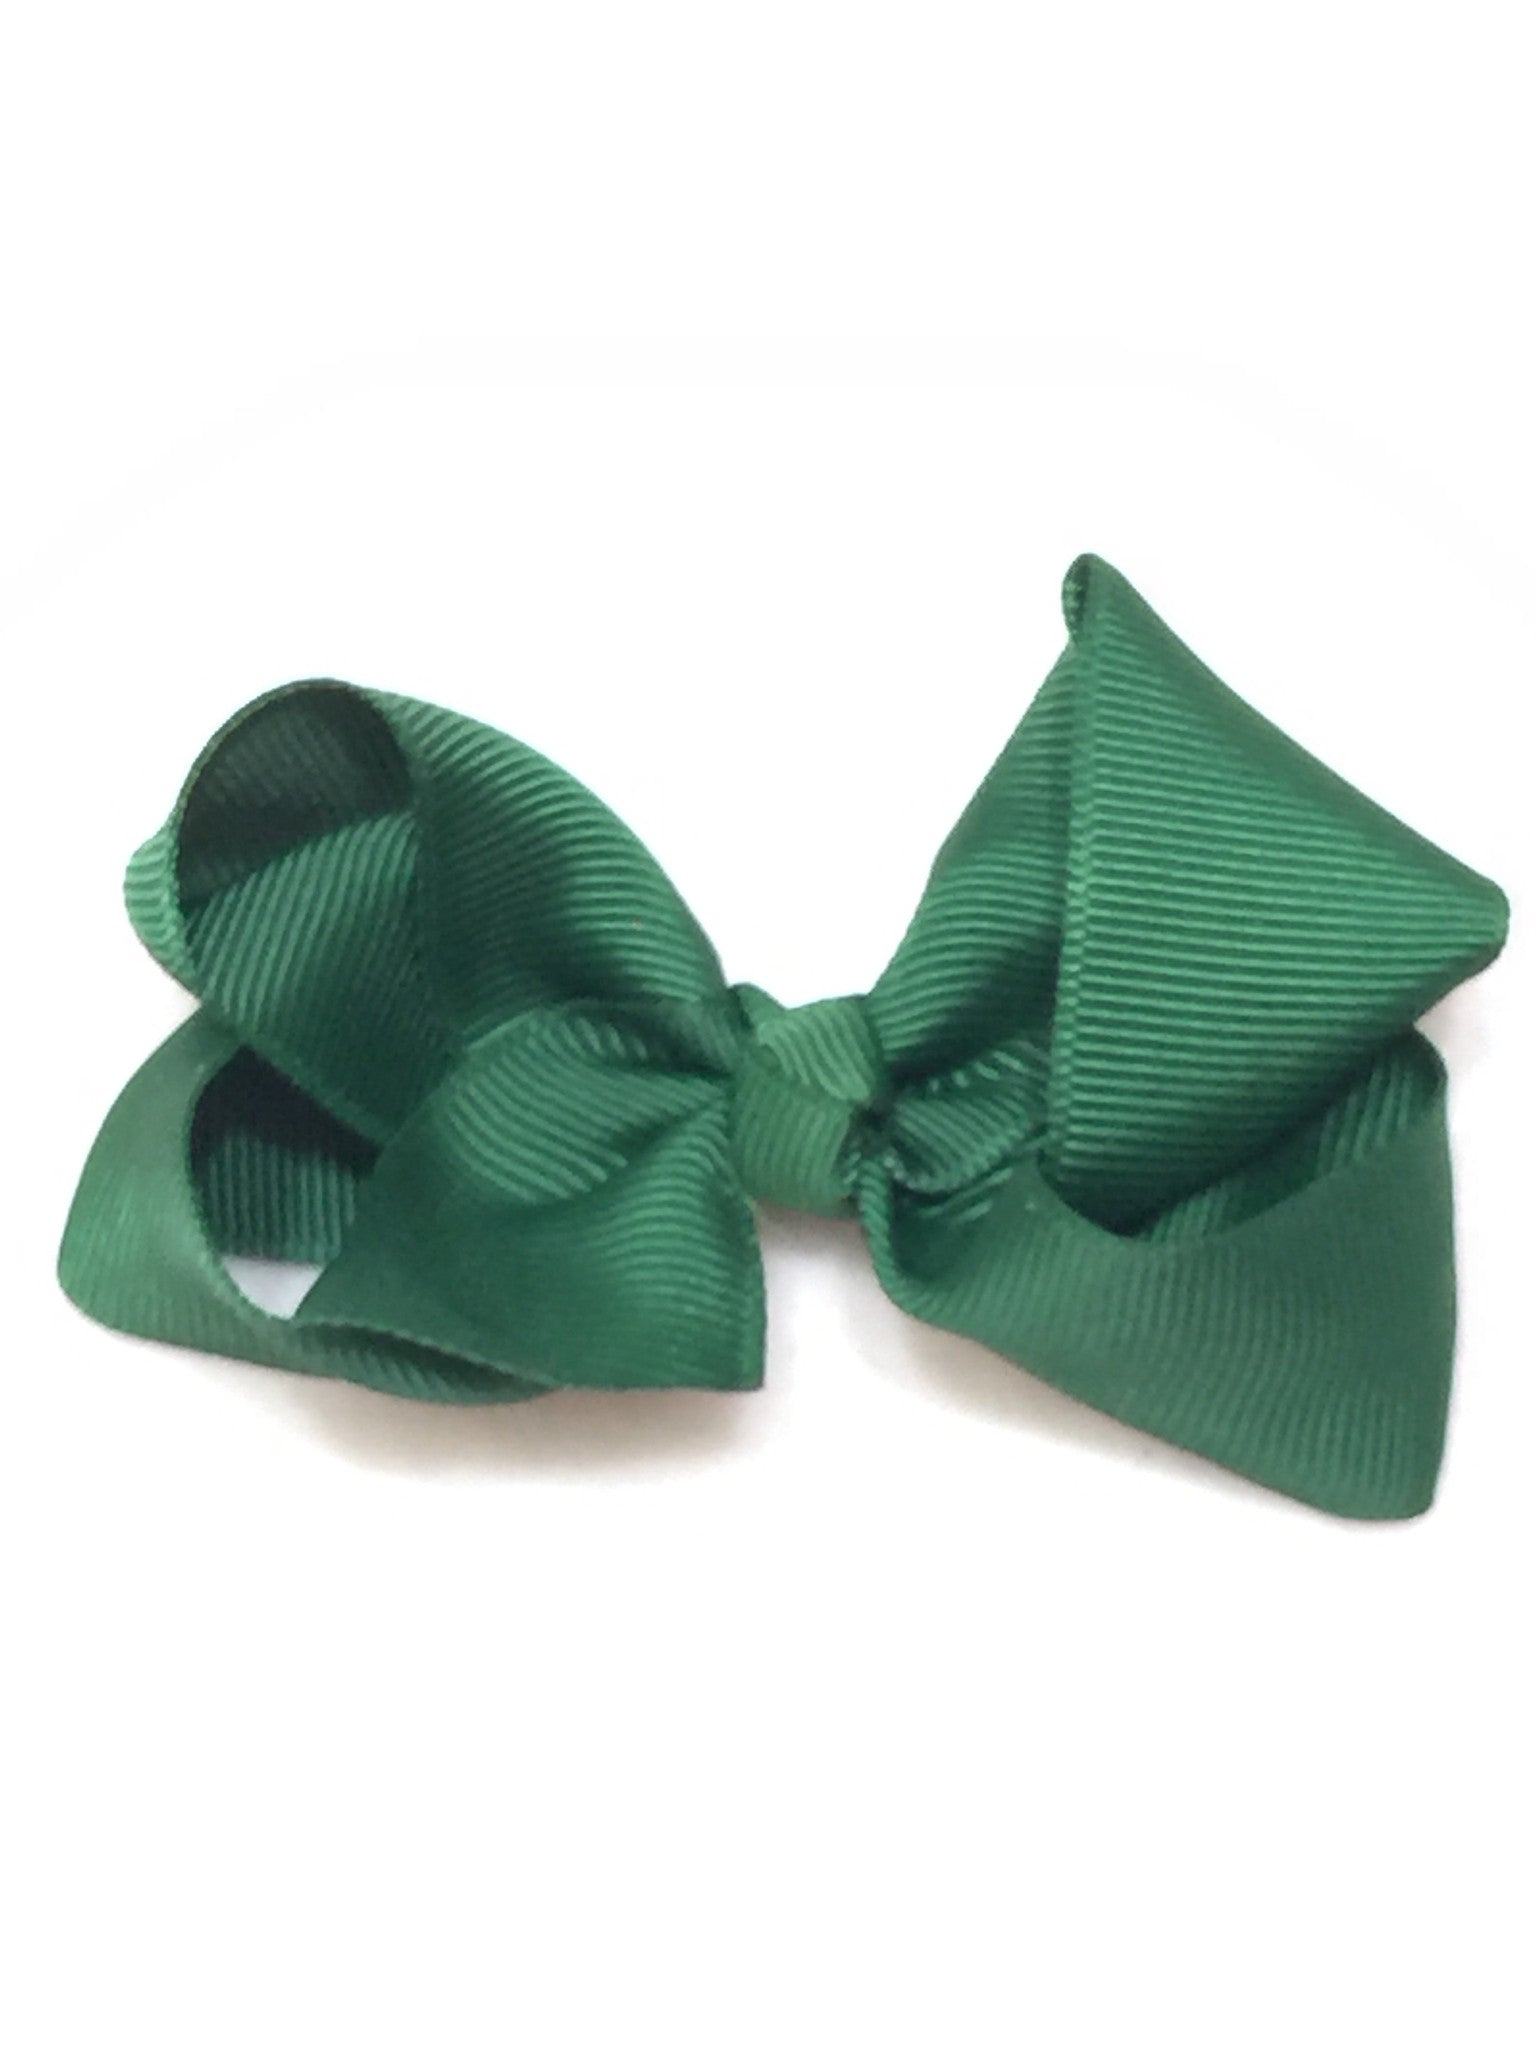 Medium Bow Knot - Hunter Green - Cutie Bowtutie